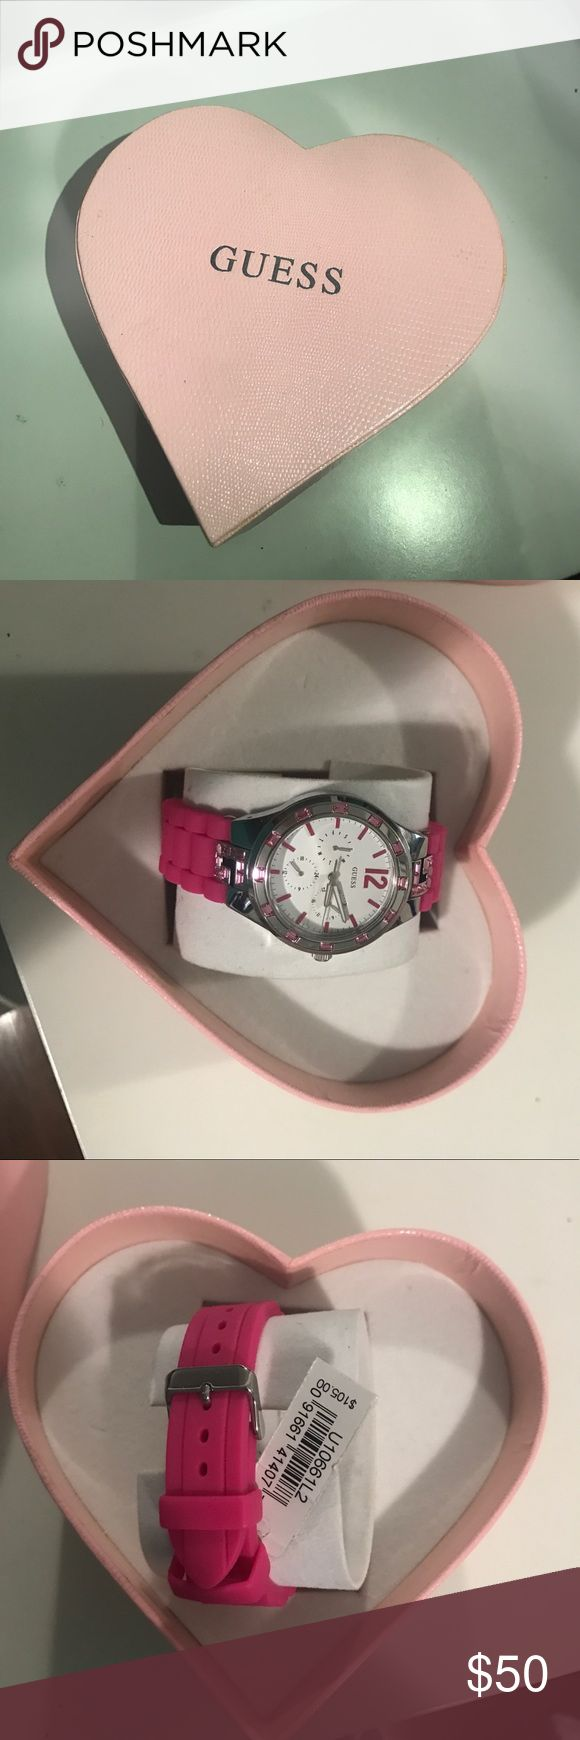 Guess watch Pink, cute, watch, girly Guess Accessories Watches